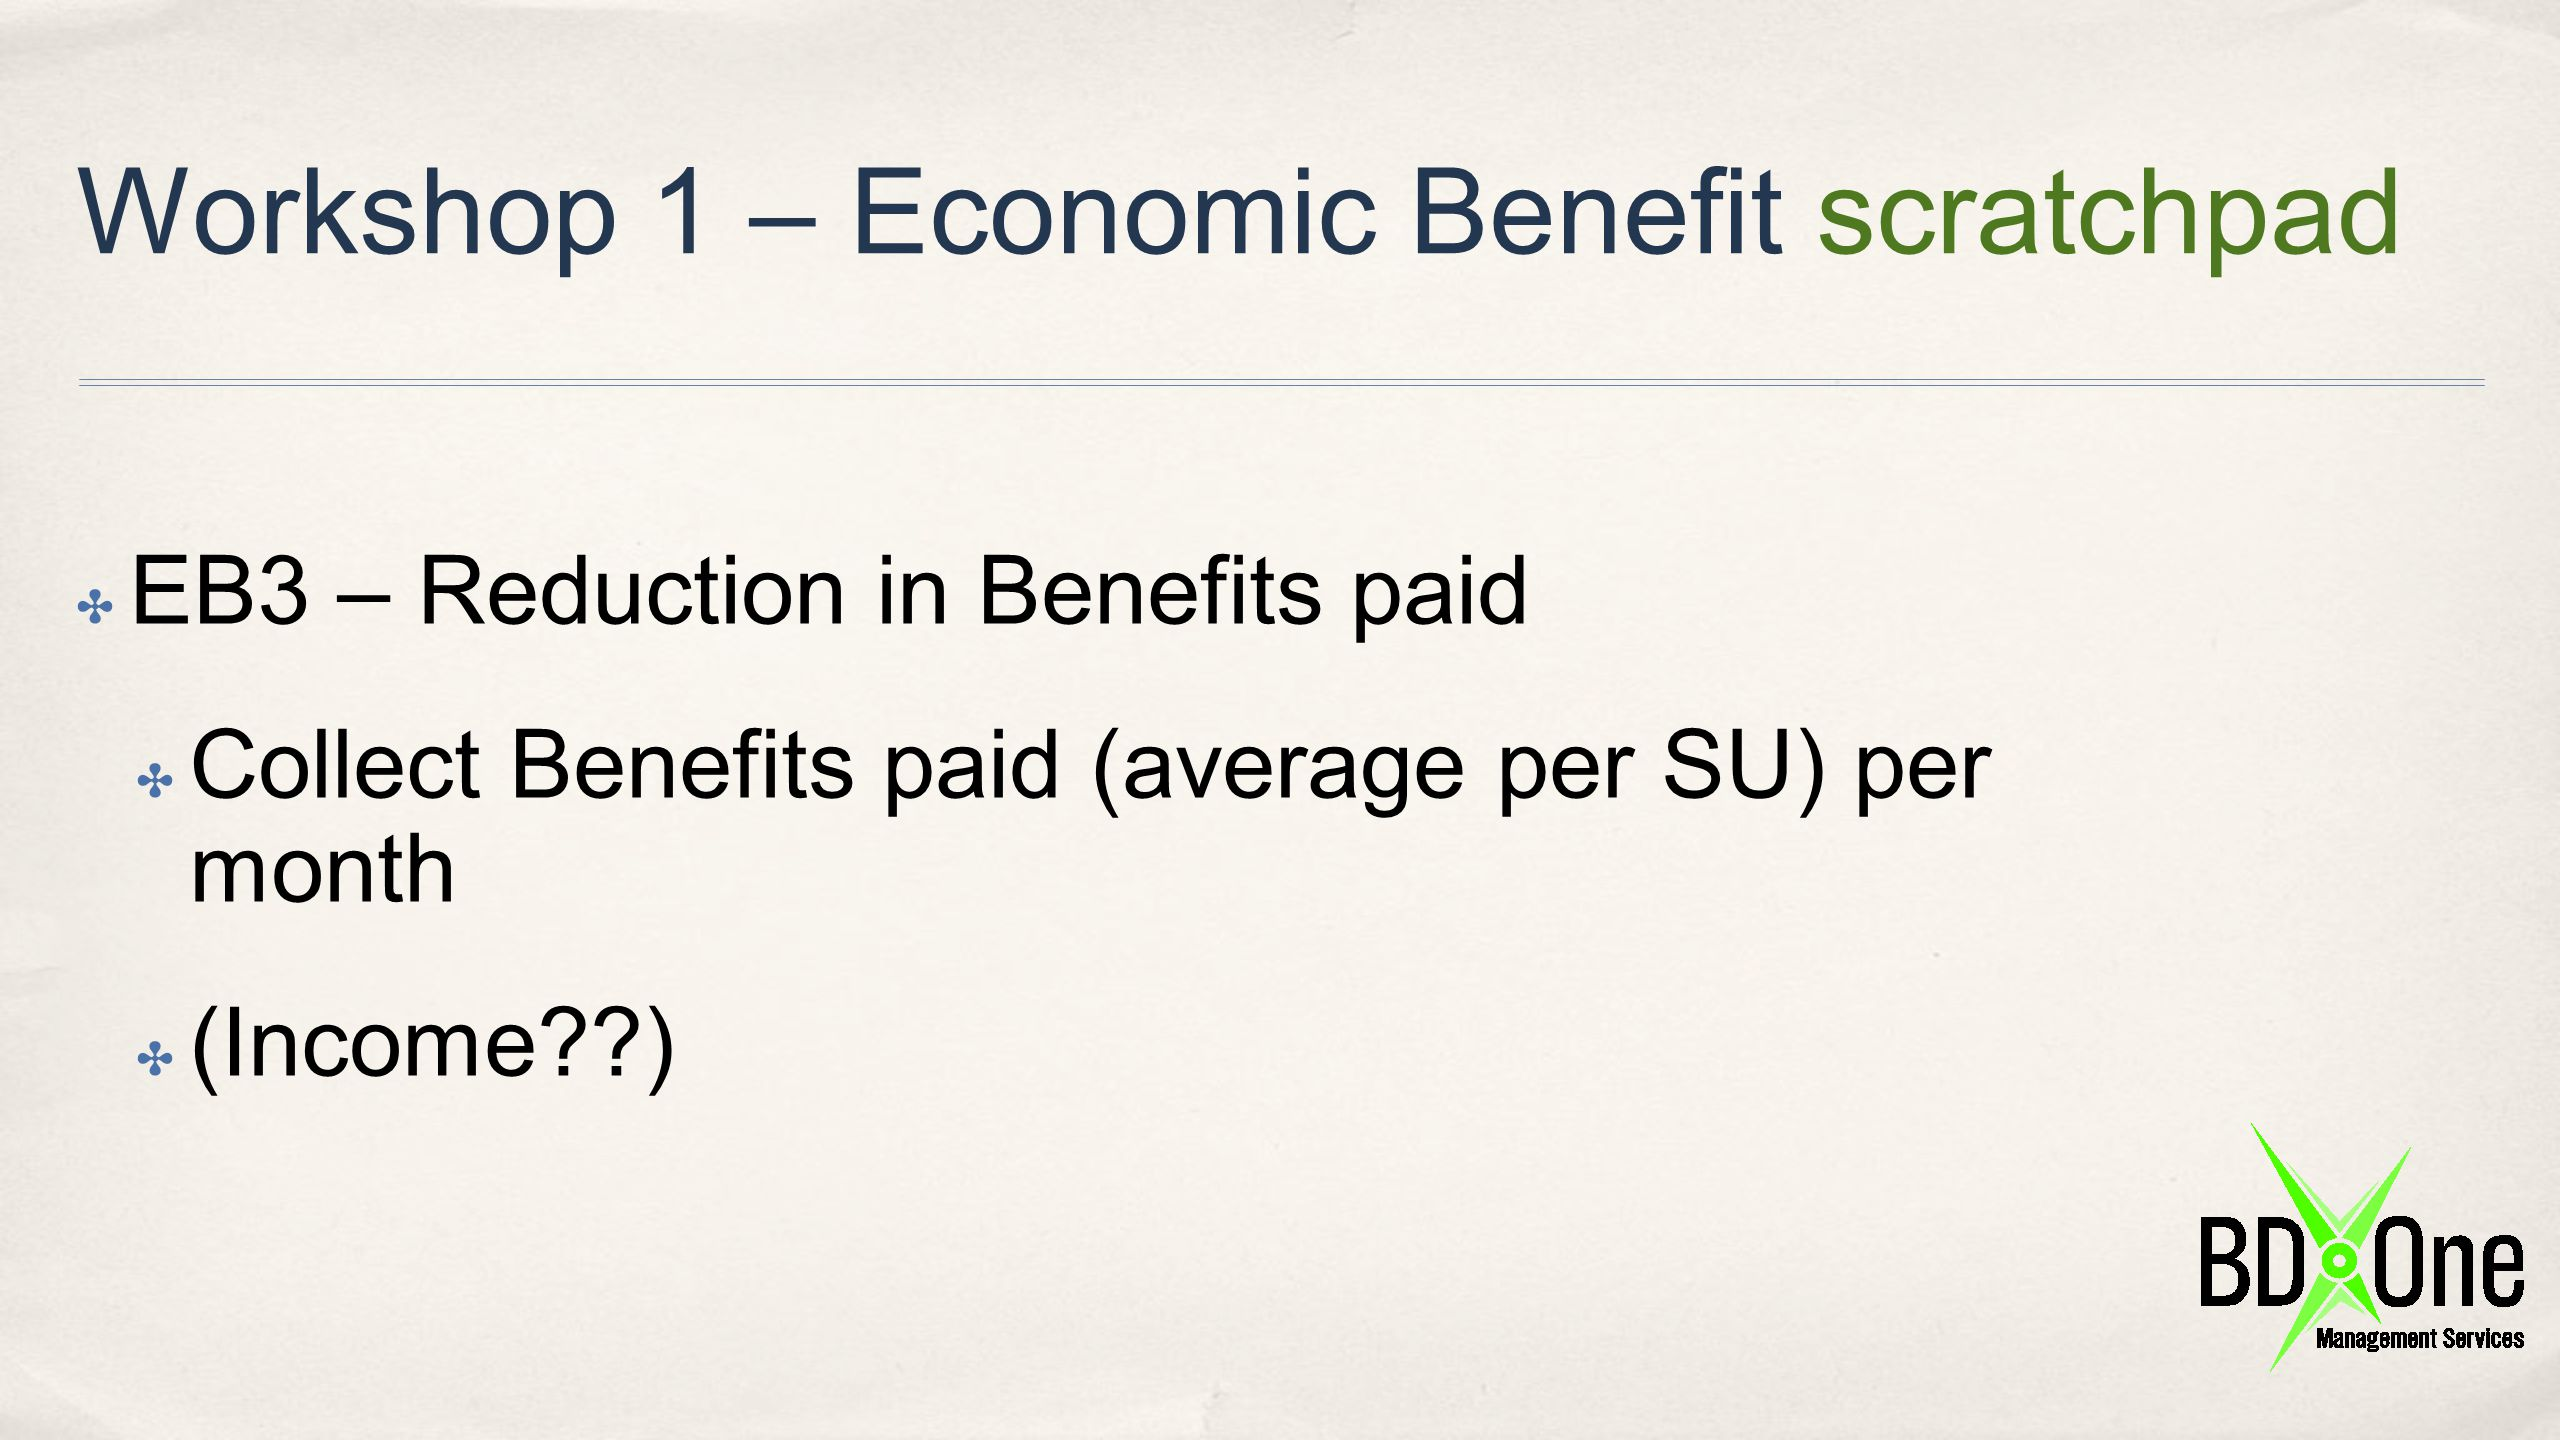 Workshop 1 – Economic Benefit scratchpad ✤ EB3 – Reduction in Benefits paid ✤ Collect Benefits paid (average per SU) per month ✤ (Income??)